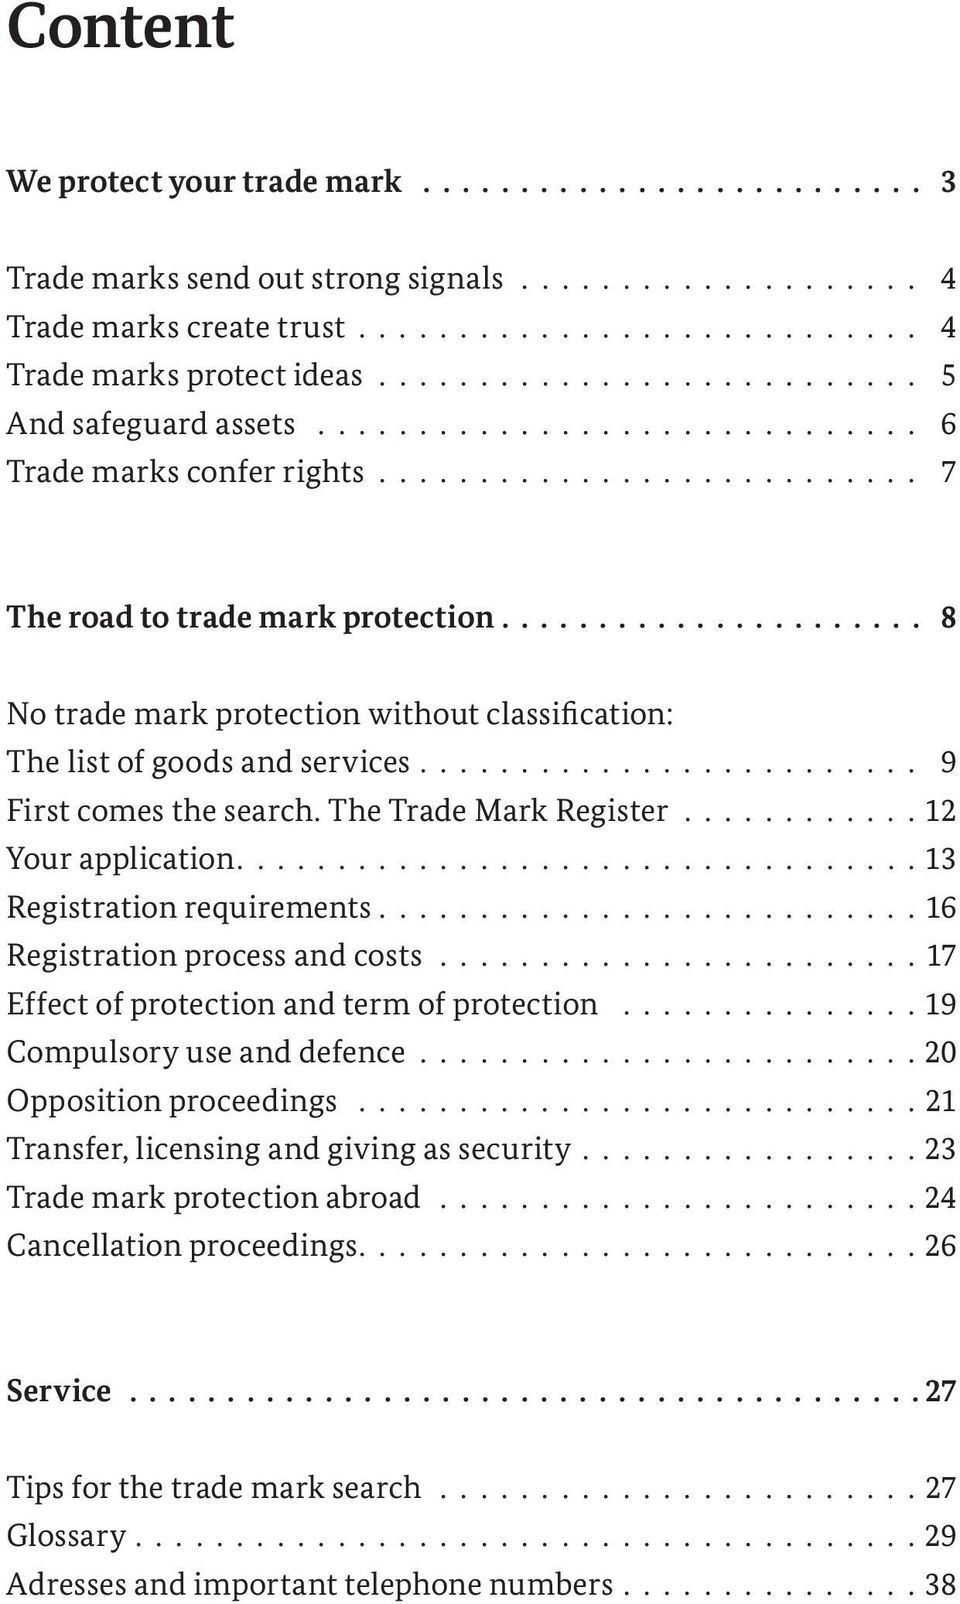 ..................... 8 No trade mark protection without classification: The list of goods and services......................... 9 First comes the search. The Trade Mark Register............ 12 Your application.